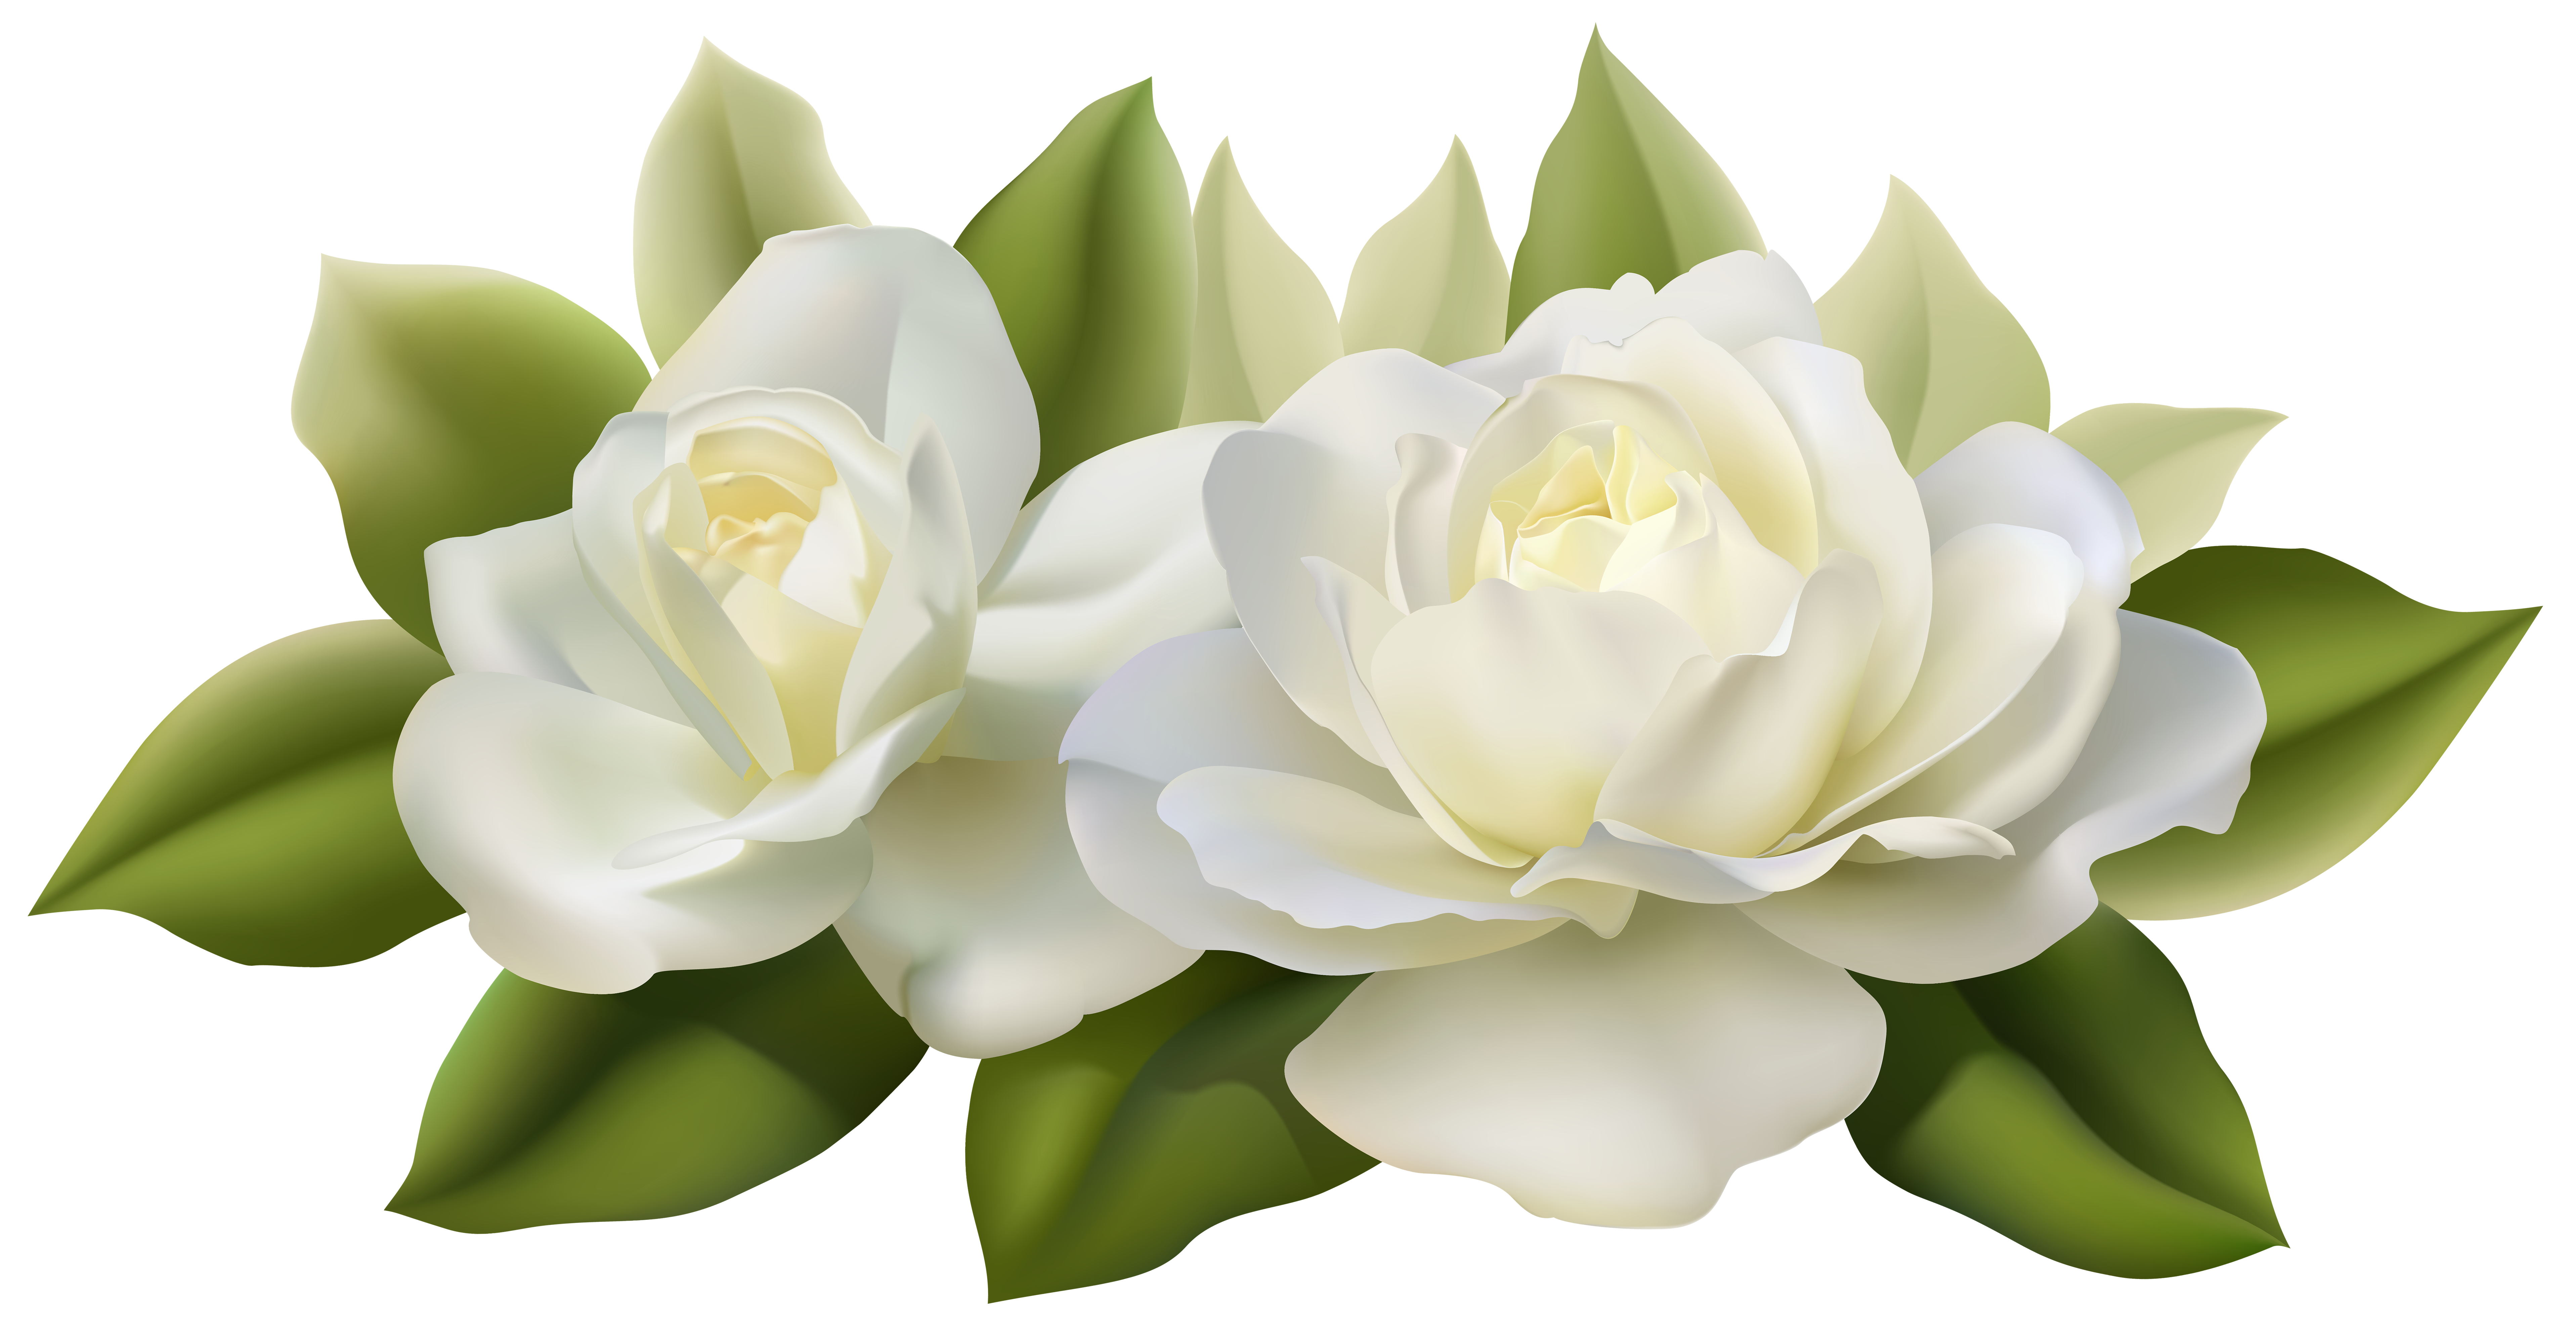 Clipart rose chalkboard. Beautiful white roses with